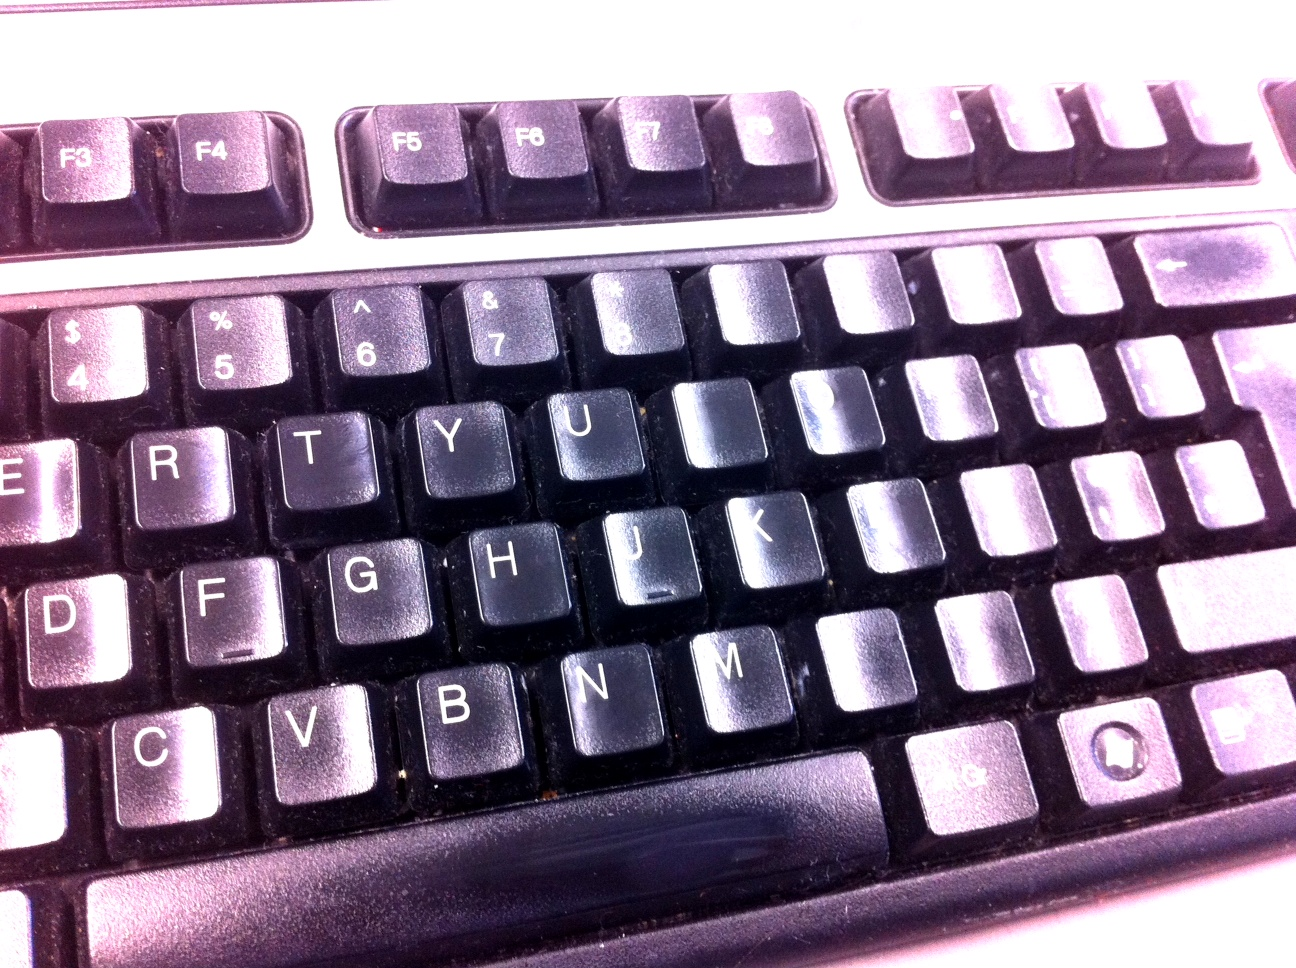 Creative writing task - no keyboards allowed!